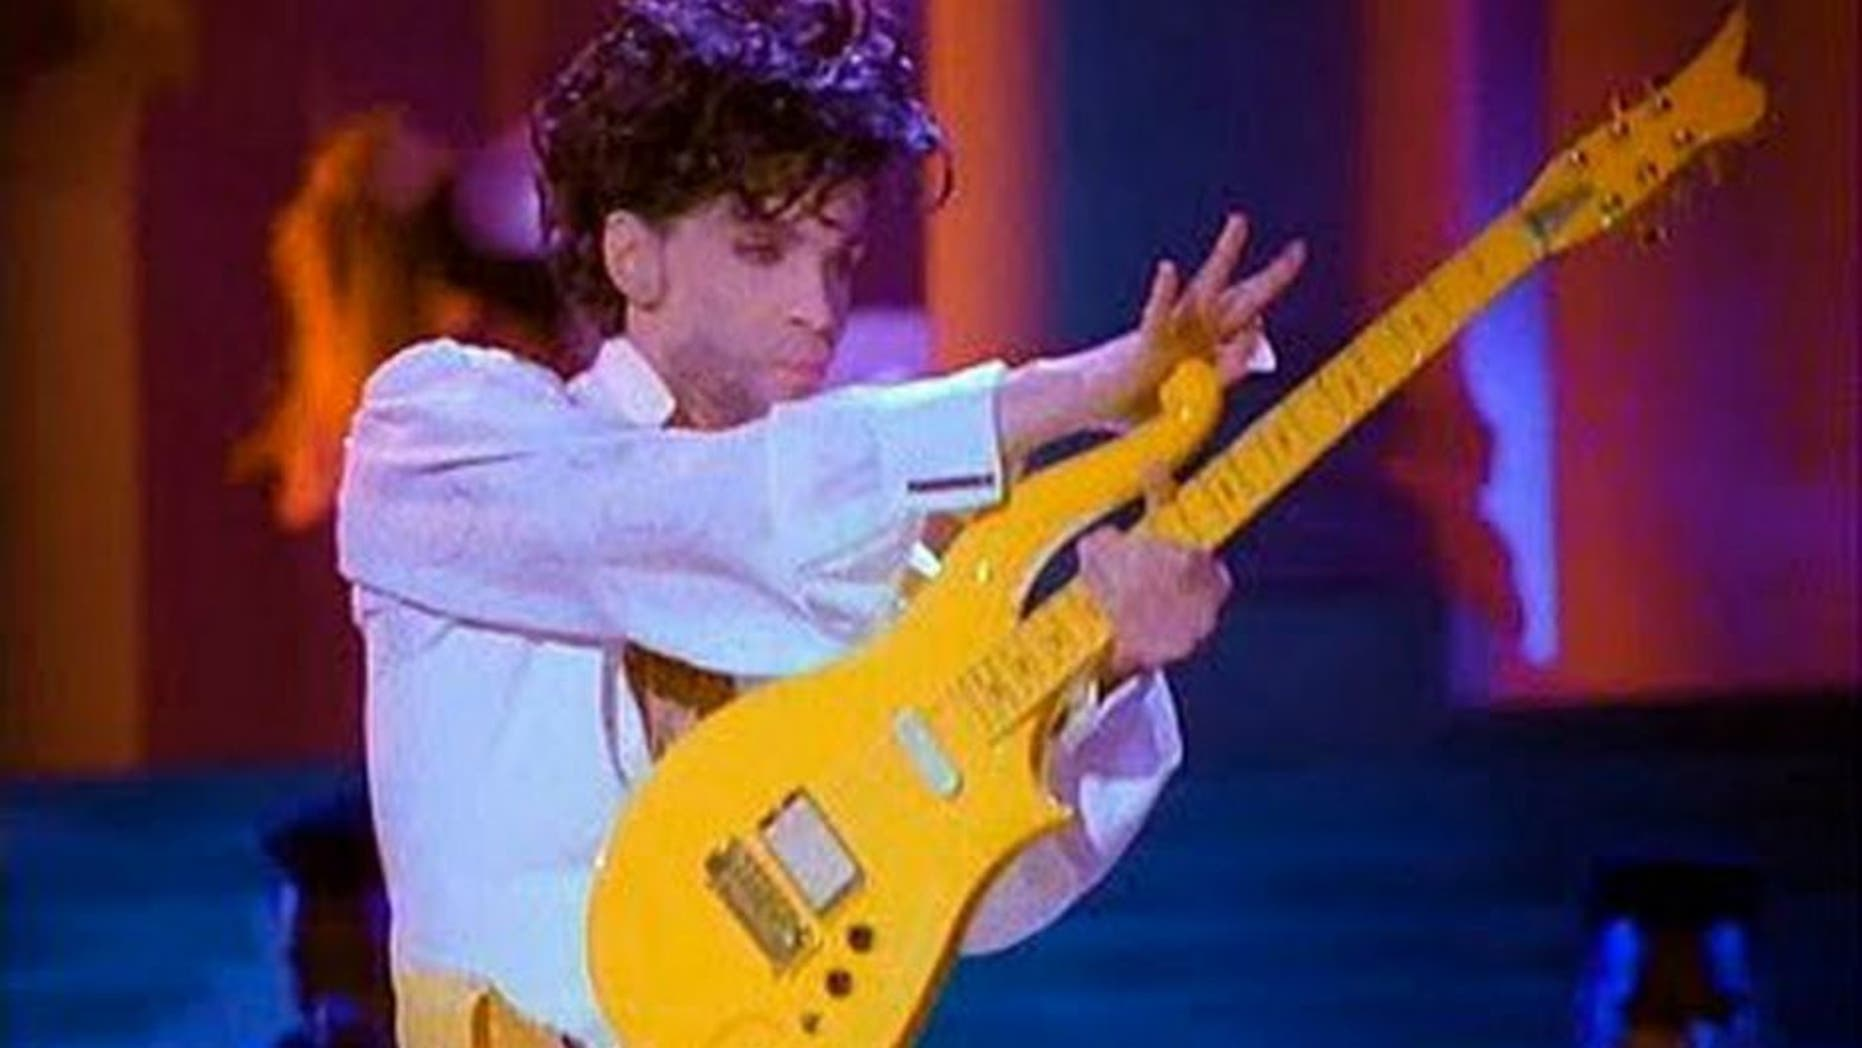 This photo provided by Heritage Auctions shows Prince playing his Yellow Cloud electric guitar. Indianapolis Colts owner Jim Irsay has purchased the Yellow Cloud electric guitar that Prince used in numerous concerts until the mid-1990's. The NFL football team owner and collector of musical instruments paid $137,500 for the guitar at an auction in Beverly Hills Saturday, June 25, 2016. Heritage Auctions, which conducted the auction, says the solid body guitar was a favorite of the late musician from the late 1980's to the mid-1990's. (Heritage Auctions via AP)